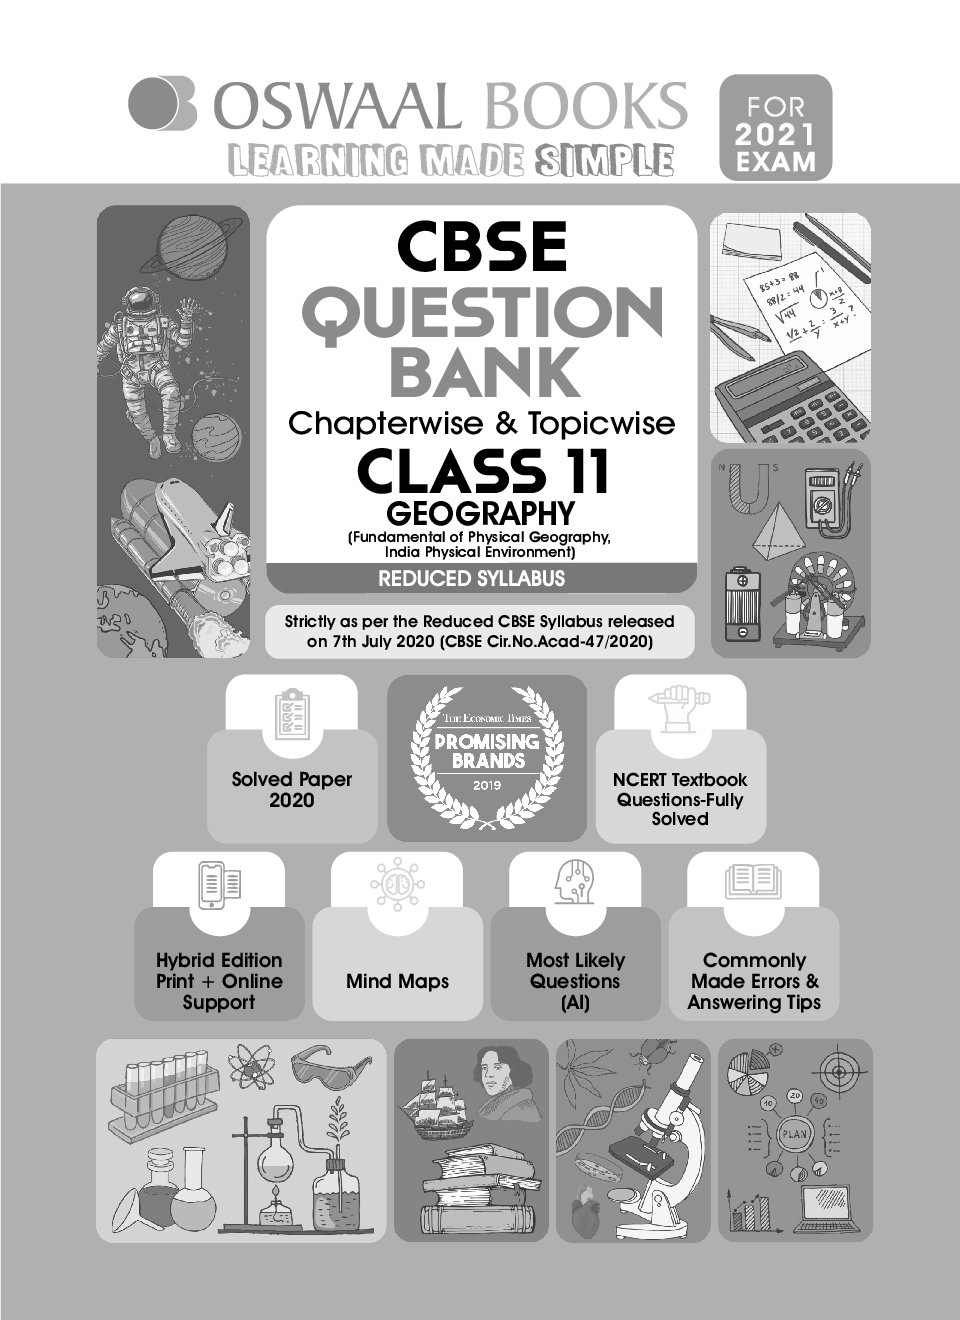 Oswaal CBSE Question Bank Chapterwise & Topicwise For Class - XI Geography Reduced Syllabus (For March 2021 Exam) - Page 2